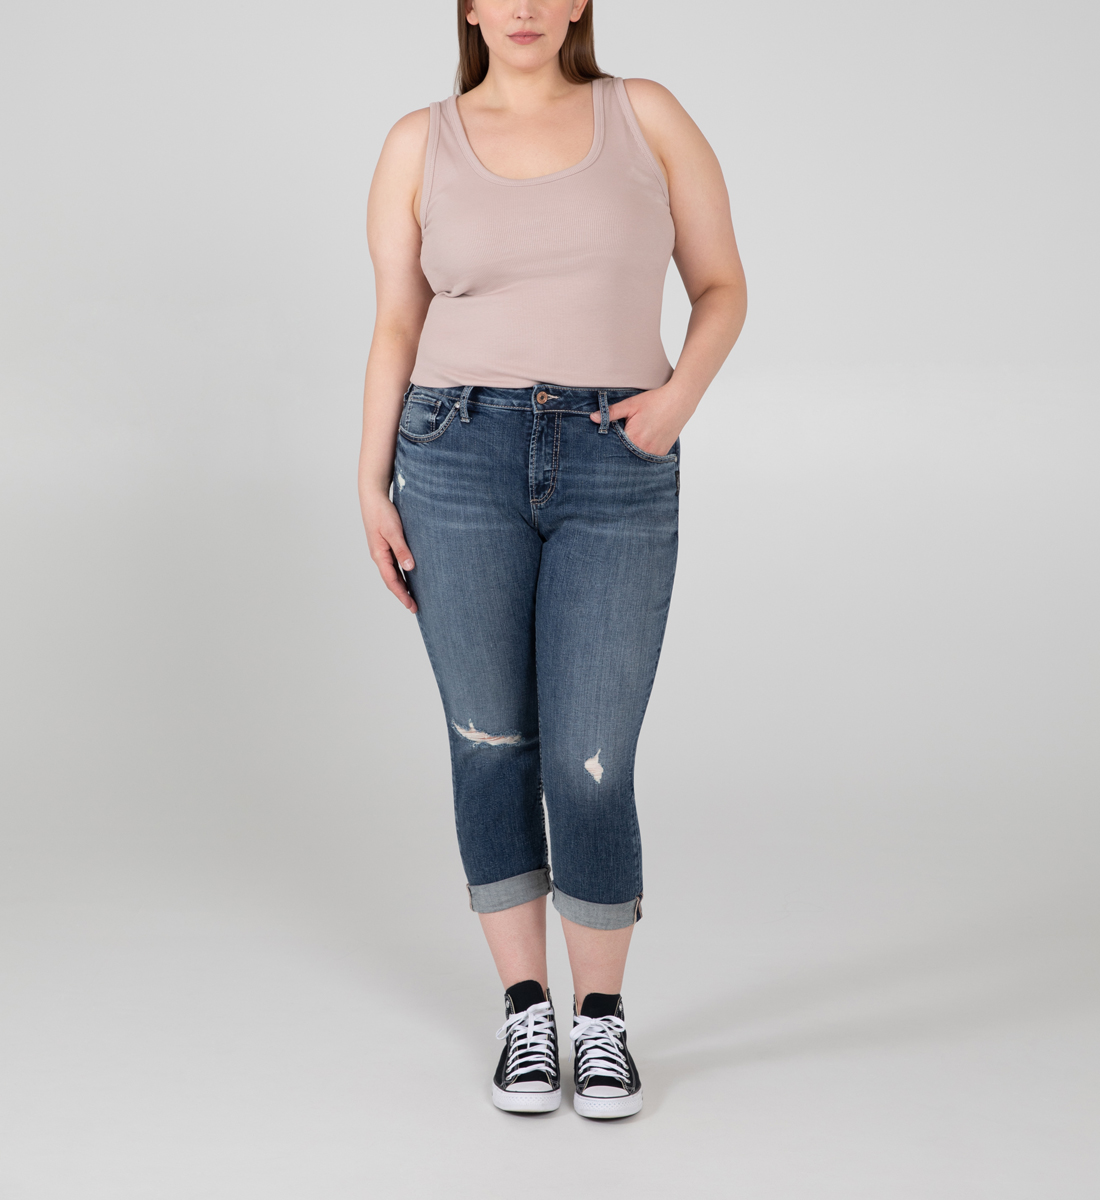 Silver Jeans Avery High Rise Skinny Crop Jeans Plus Size